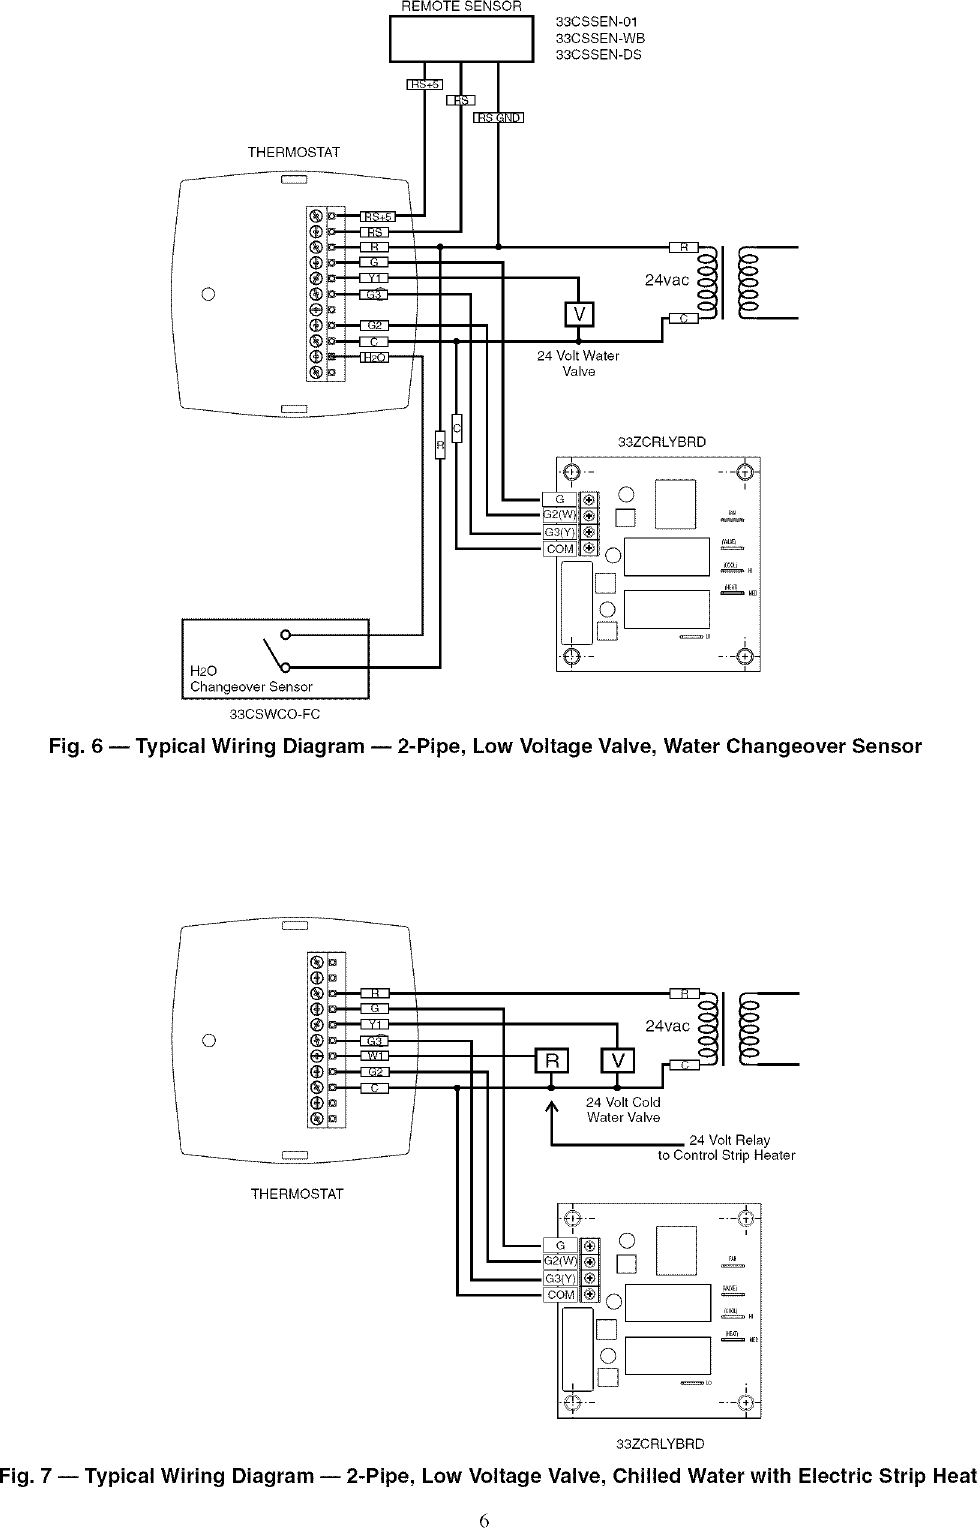 Carrier Controls And Hvac Accessories Manual L0604186 Strip Heat Wiring Diagram Page 6 Of 12